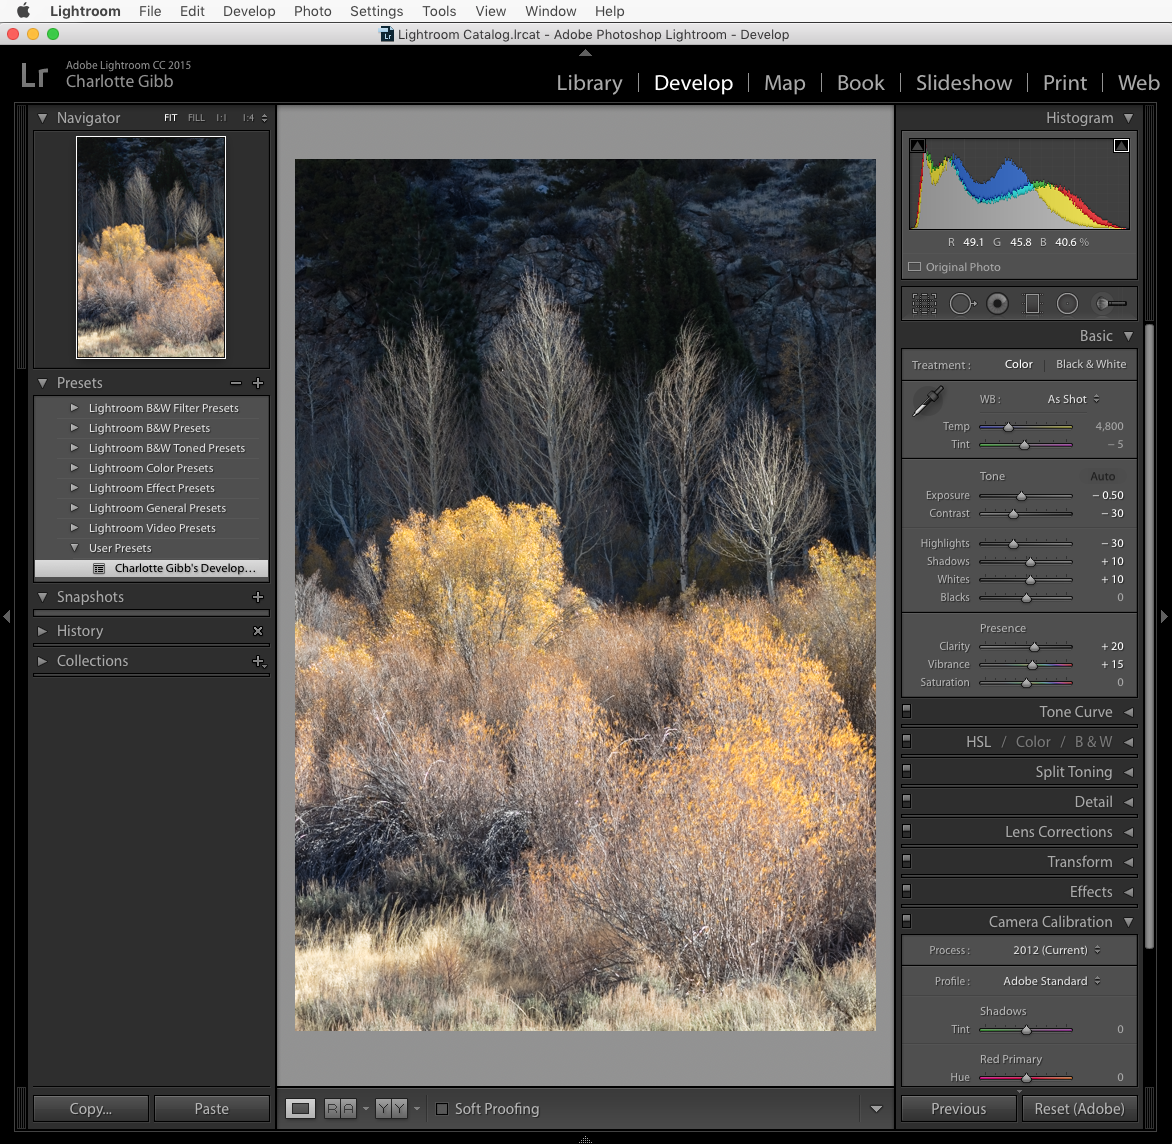 Processing photos in Photoshop. Some techniques for creating ideal shots